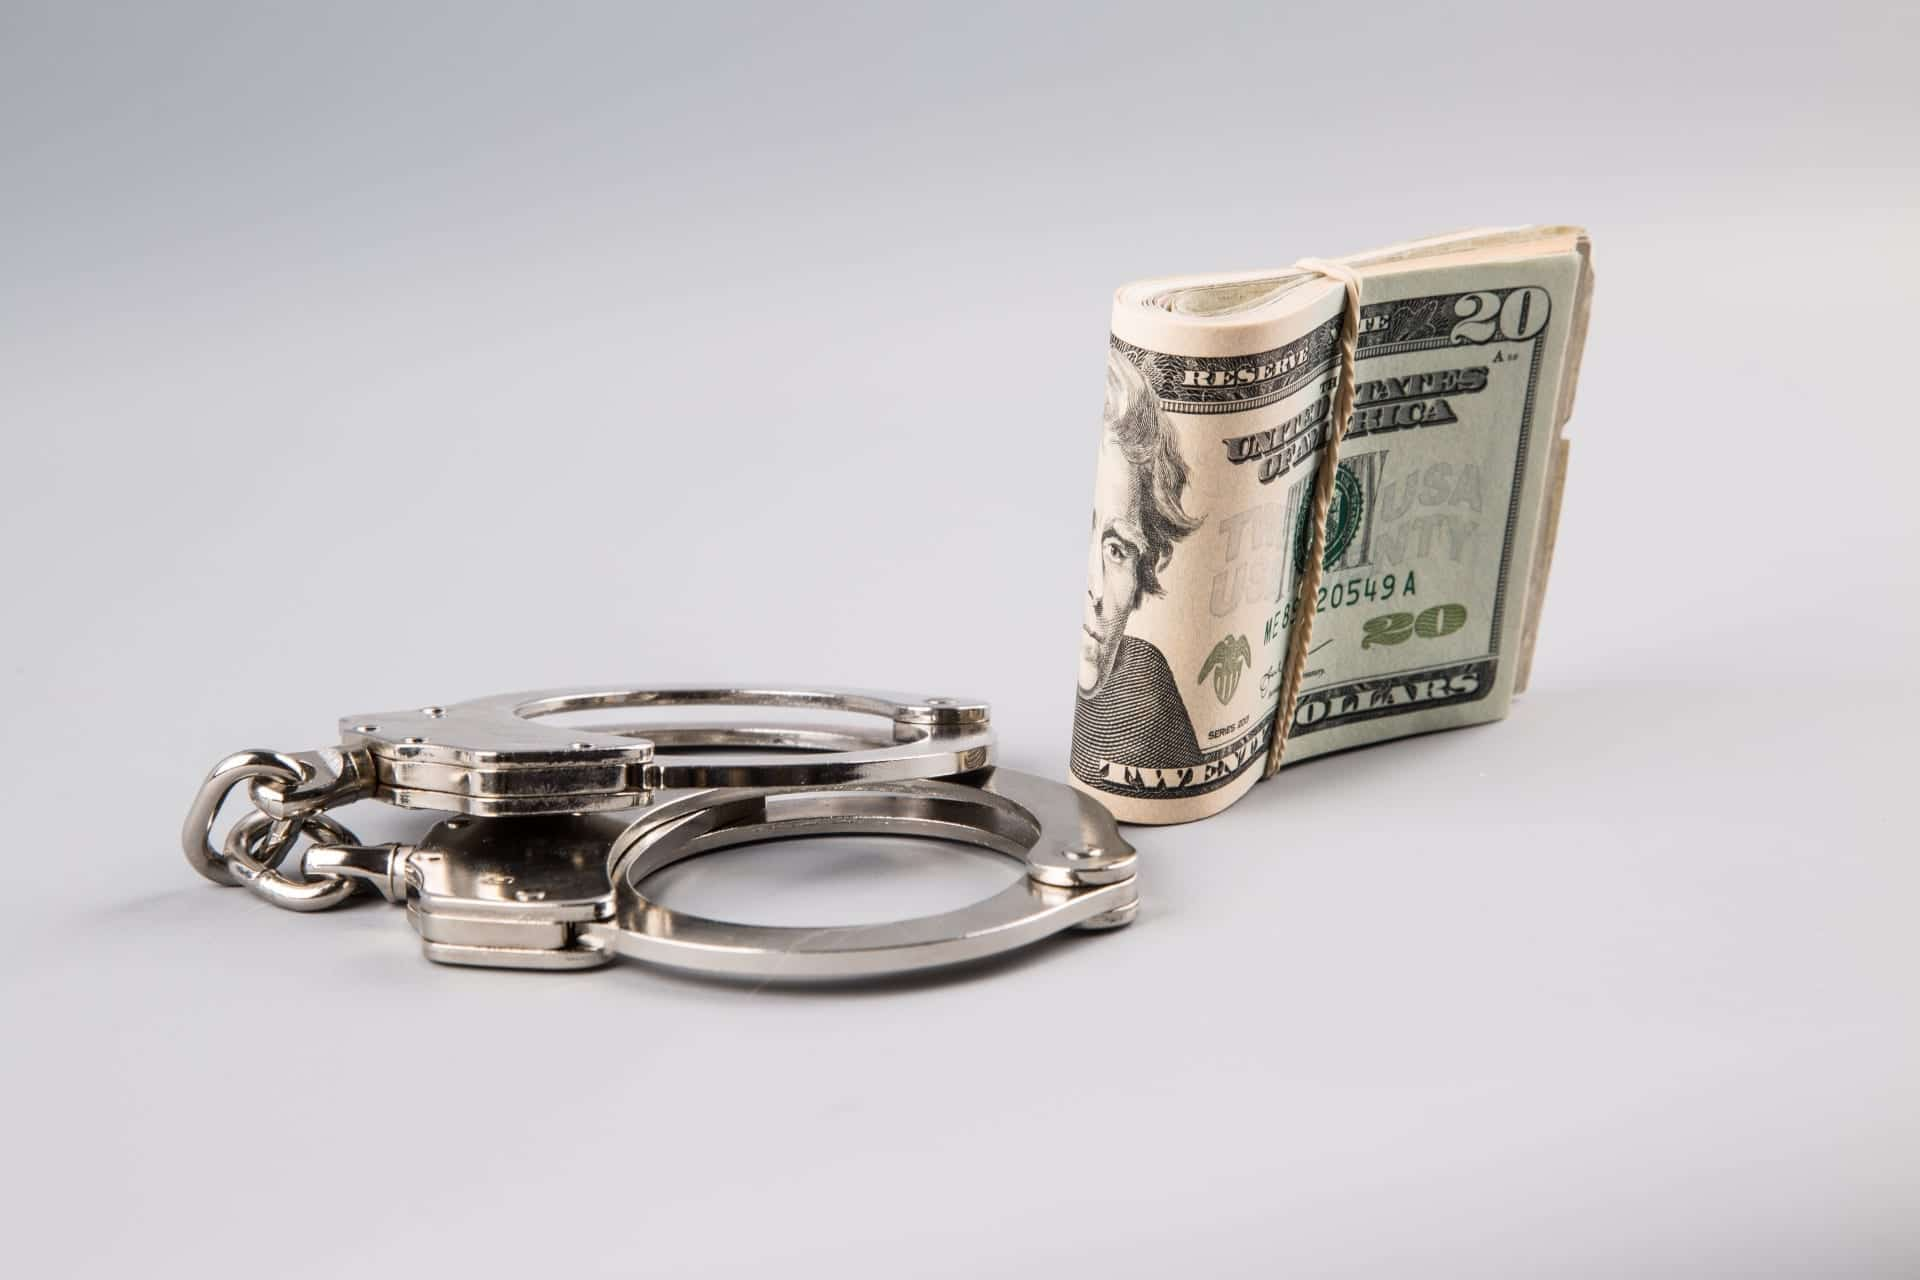 Handcuffs and money on grey background; image by George Hodan, via PublicDomainPictures.net, CC0.